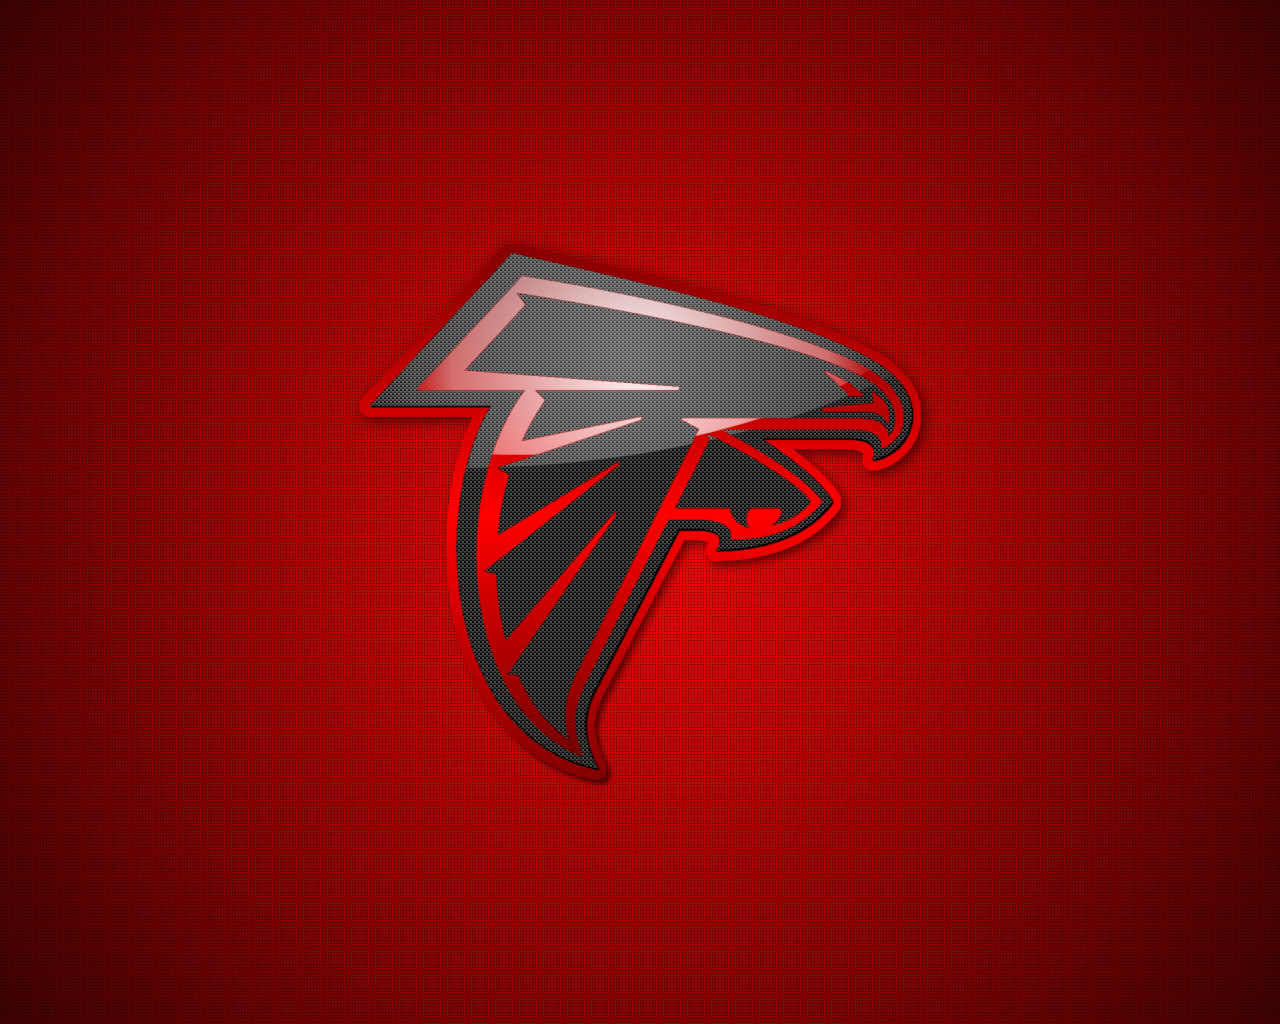 Atlanta Falcon Wallpapers Group 60: Atlanta Falcon Wallpapers (39 Wallpapers)